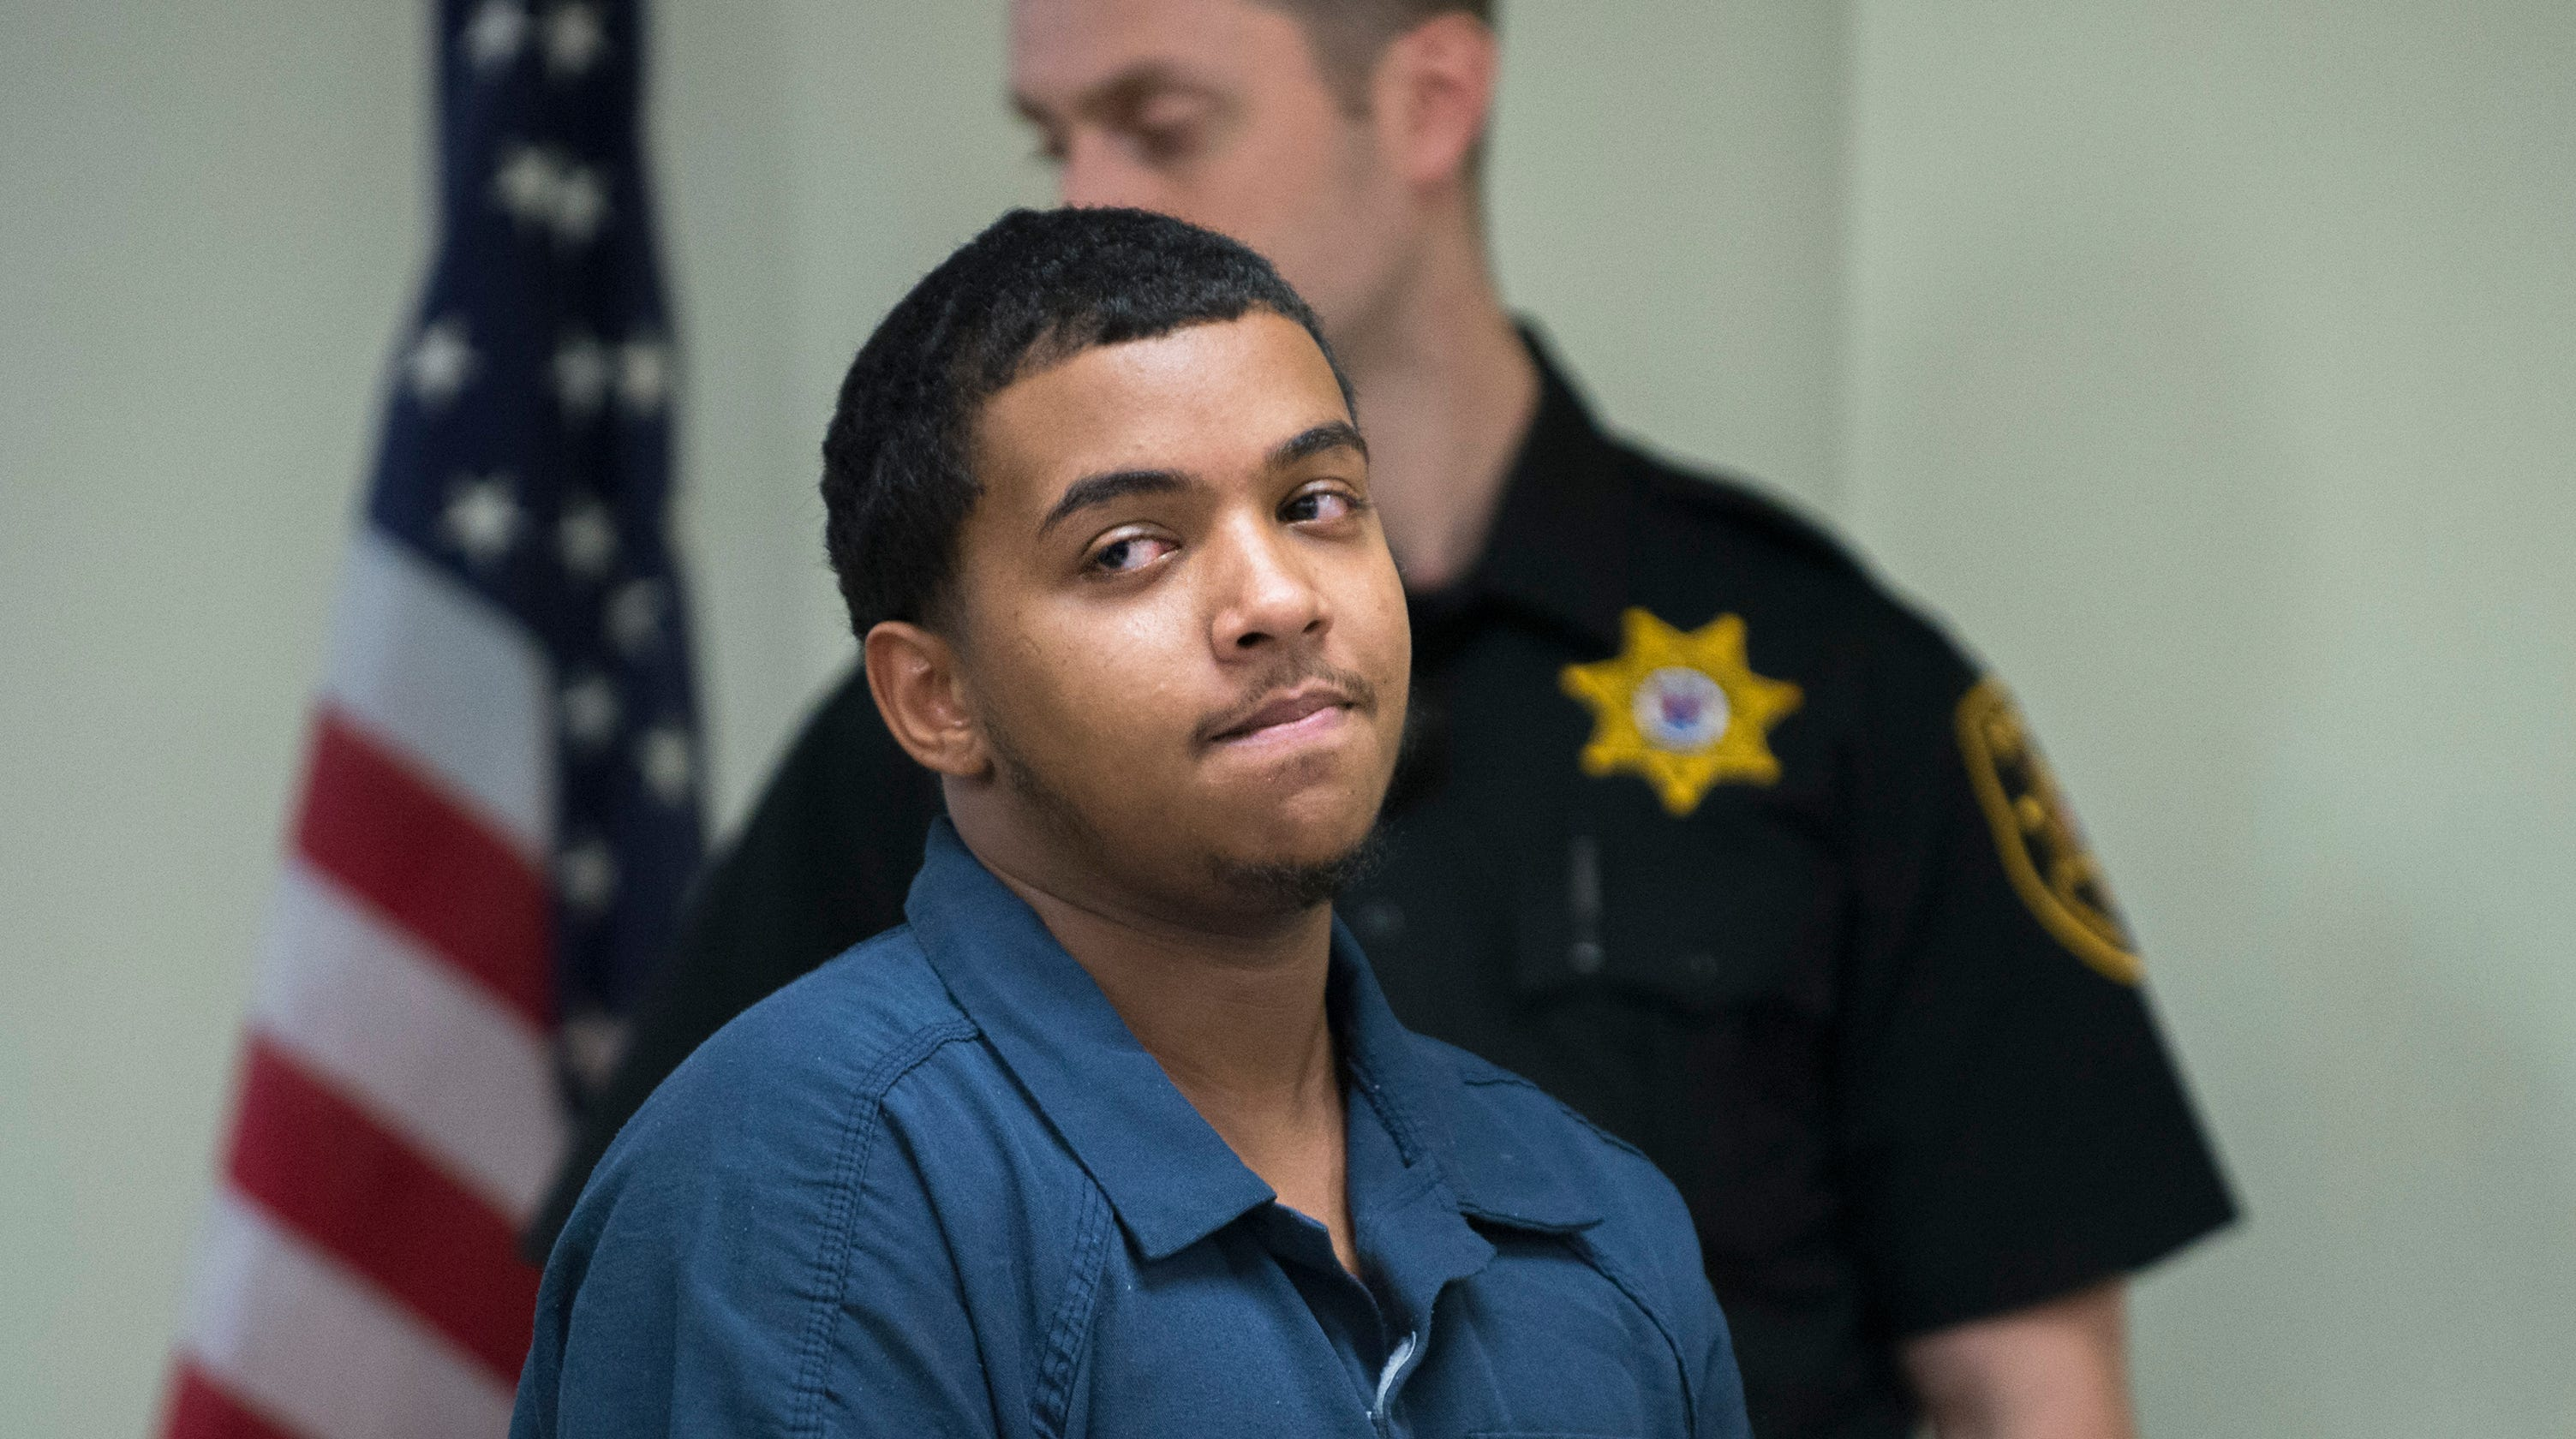 Juan Figueroa, accused cop shooter, alleged to be a drug